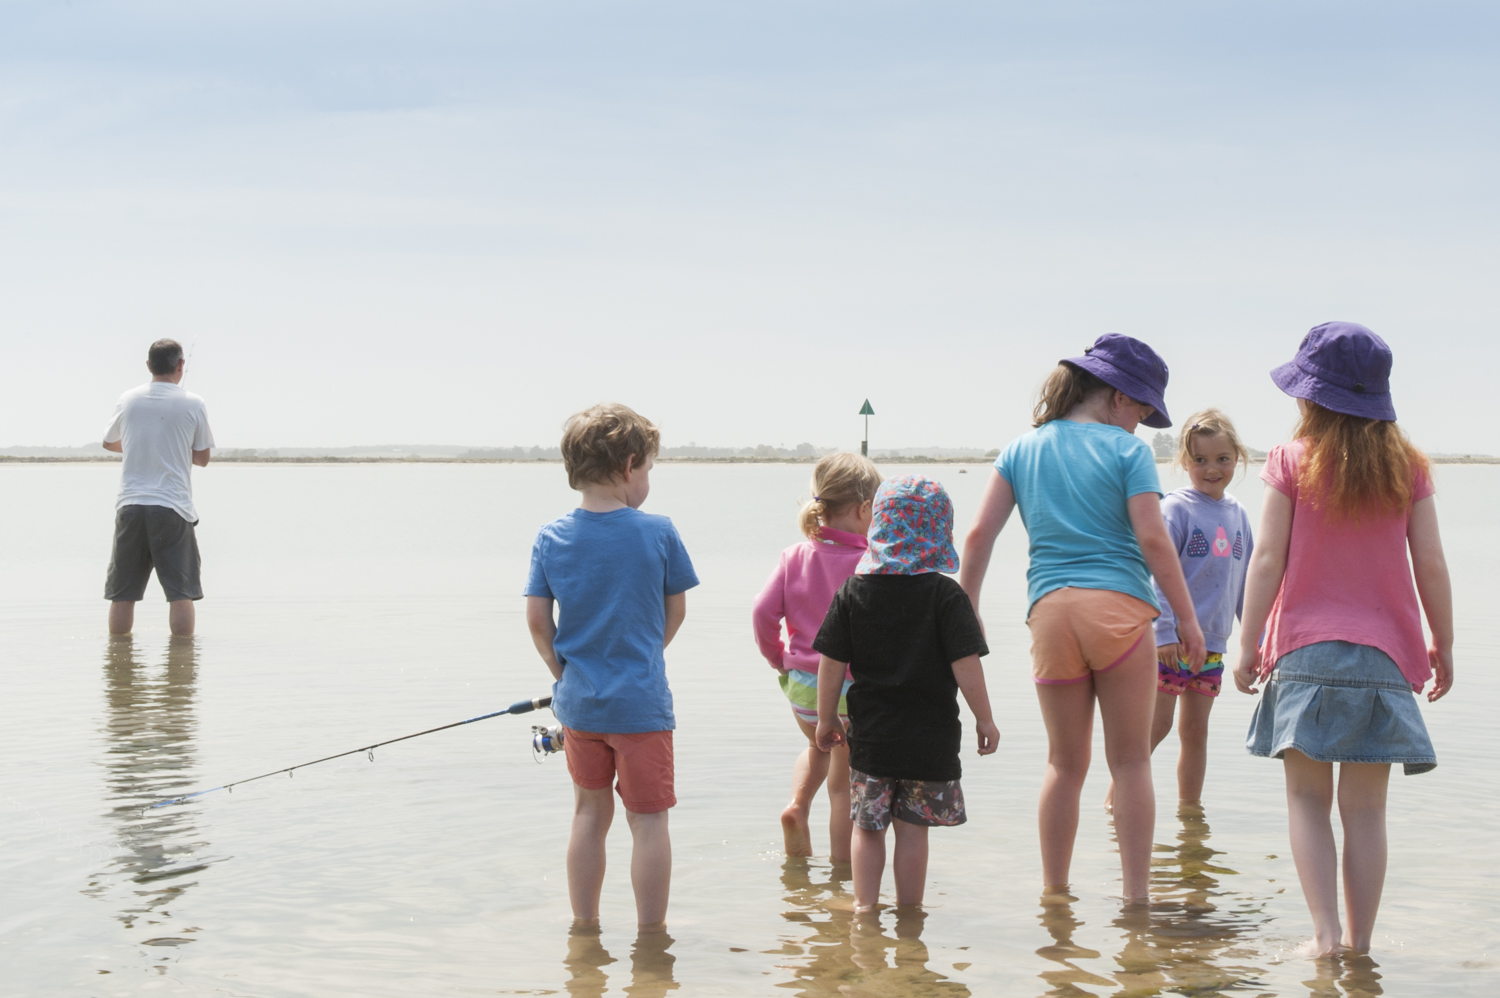 Coorong fishing - the kids were the only ones to catch fish.